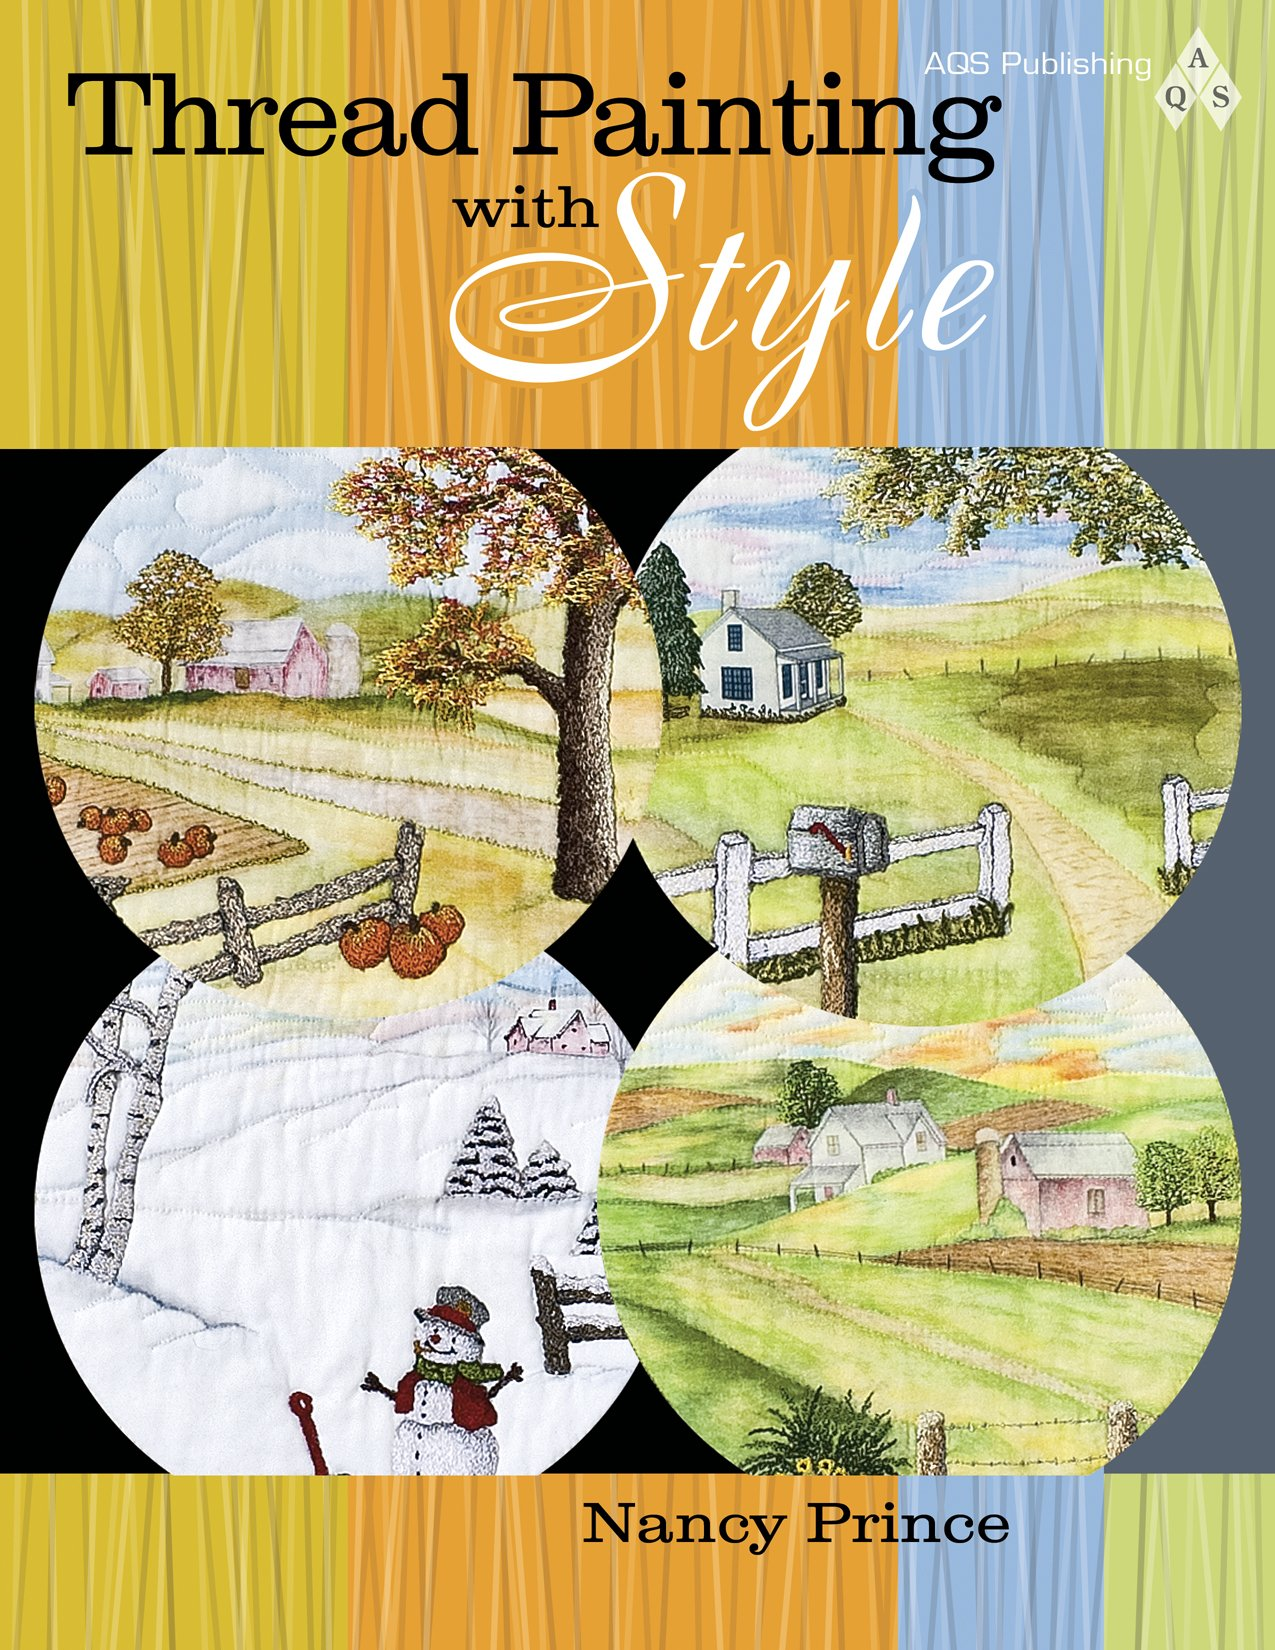 Thread Painting with Style: Amazon.co.uk: Nancy Prince: 9781574326468: Books